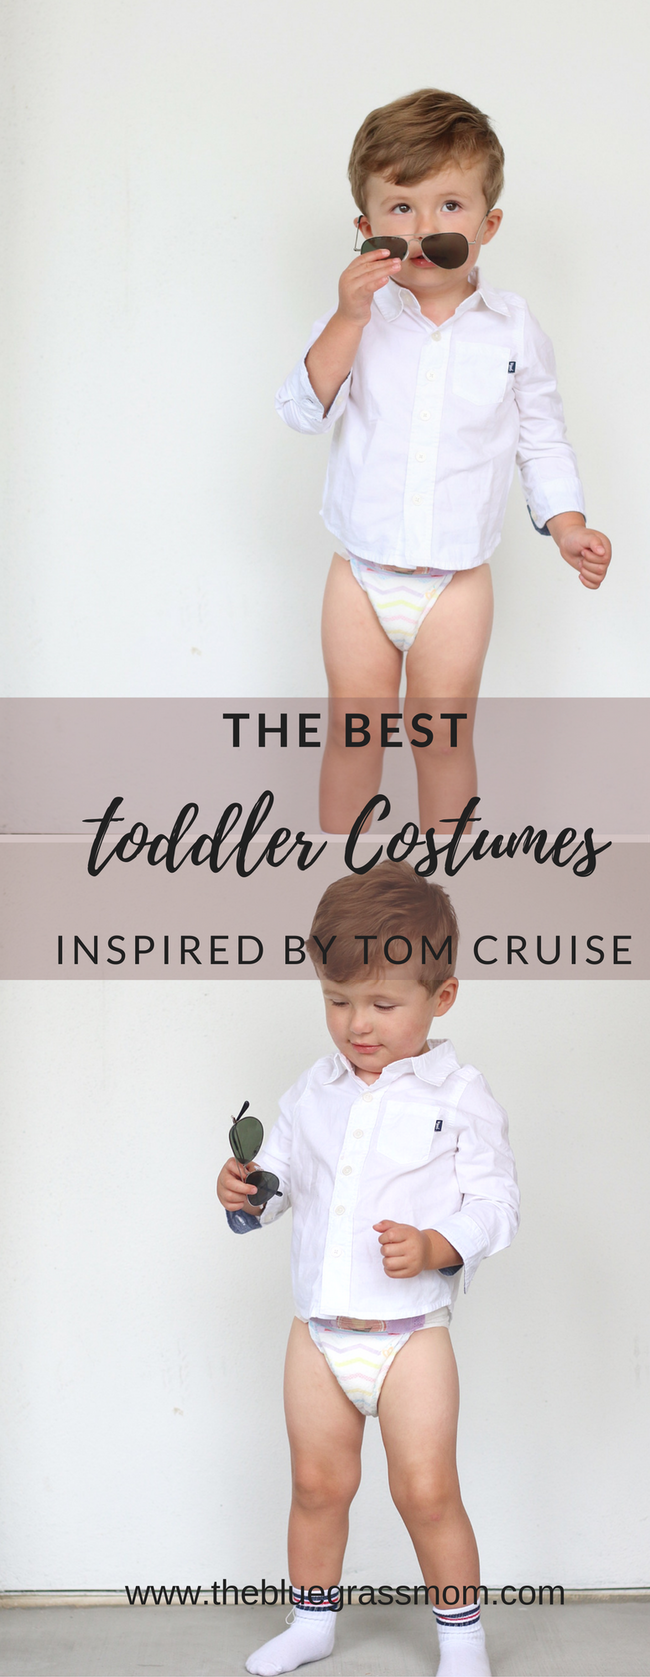 The Best Toddler Halloween Costumes Inspired by Tom Cruise